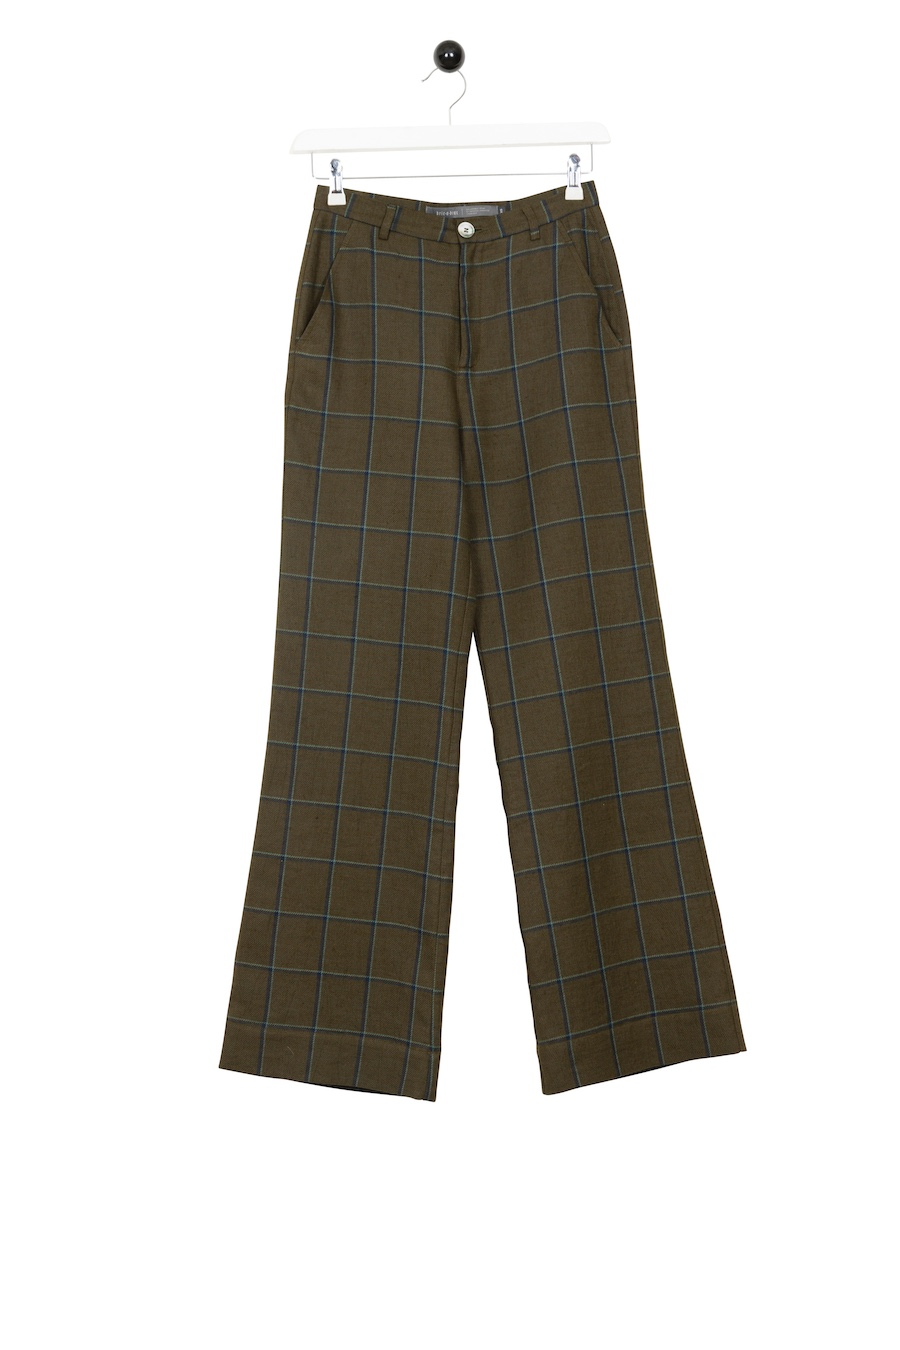 Djerma Trousers